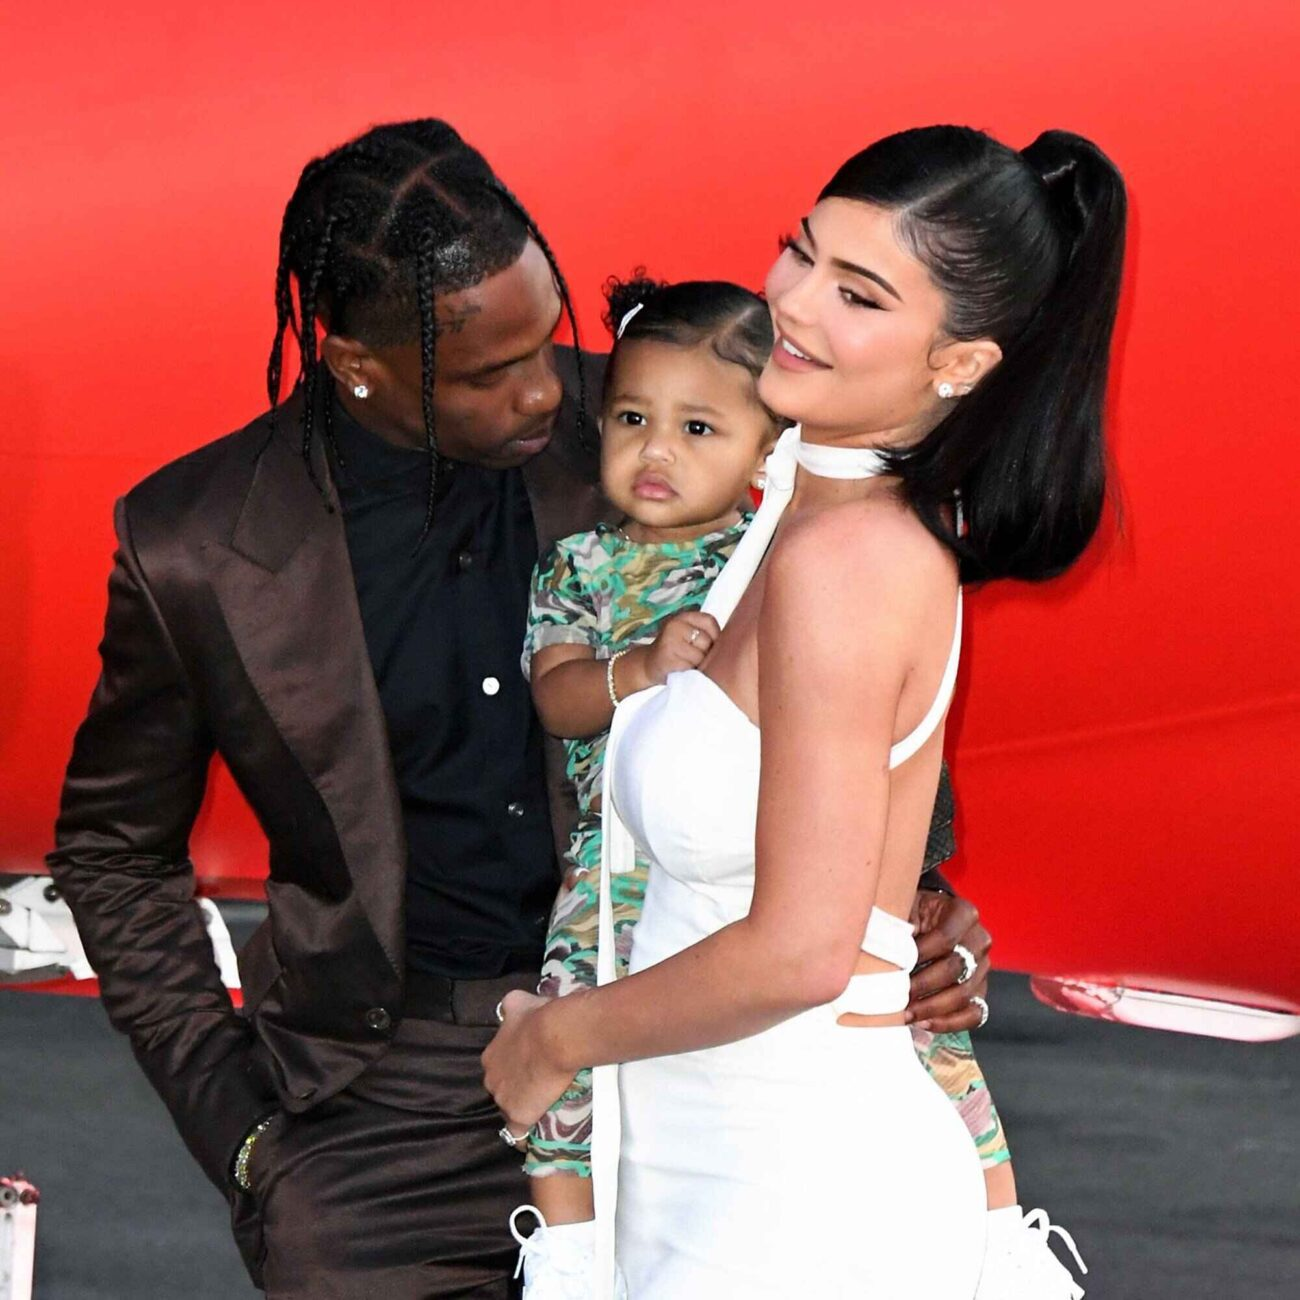 It finally happened: Kylie Jenner is pregnant again! Pick a proper baby shower gift and learn all about the superstar's official announcement!